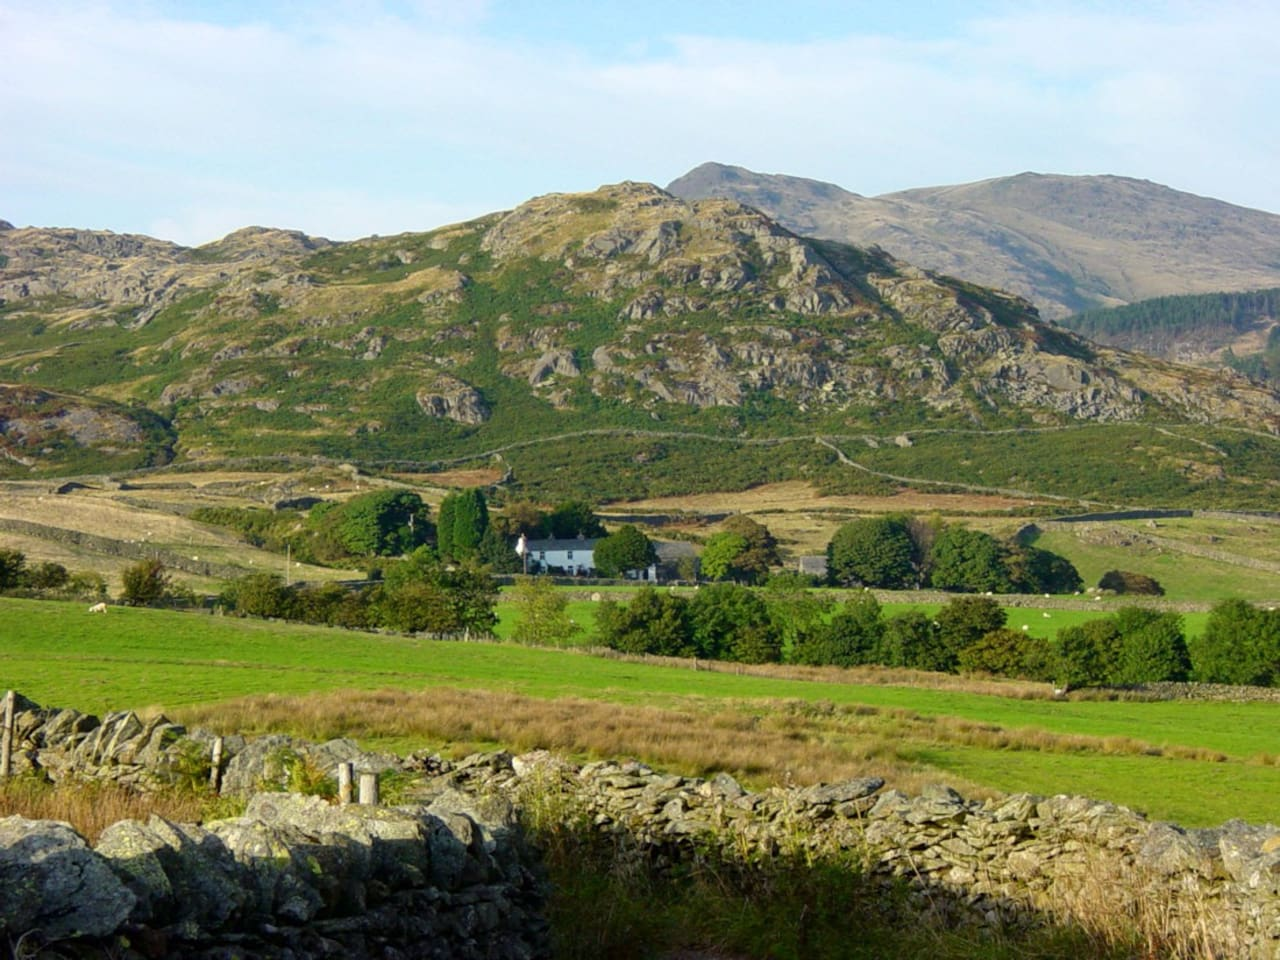 The house is nestled in the fells with no immediate neighbours